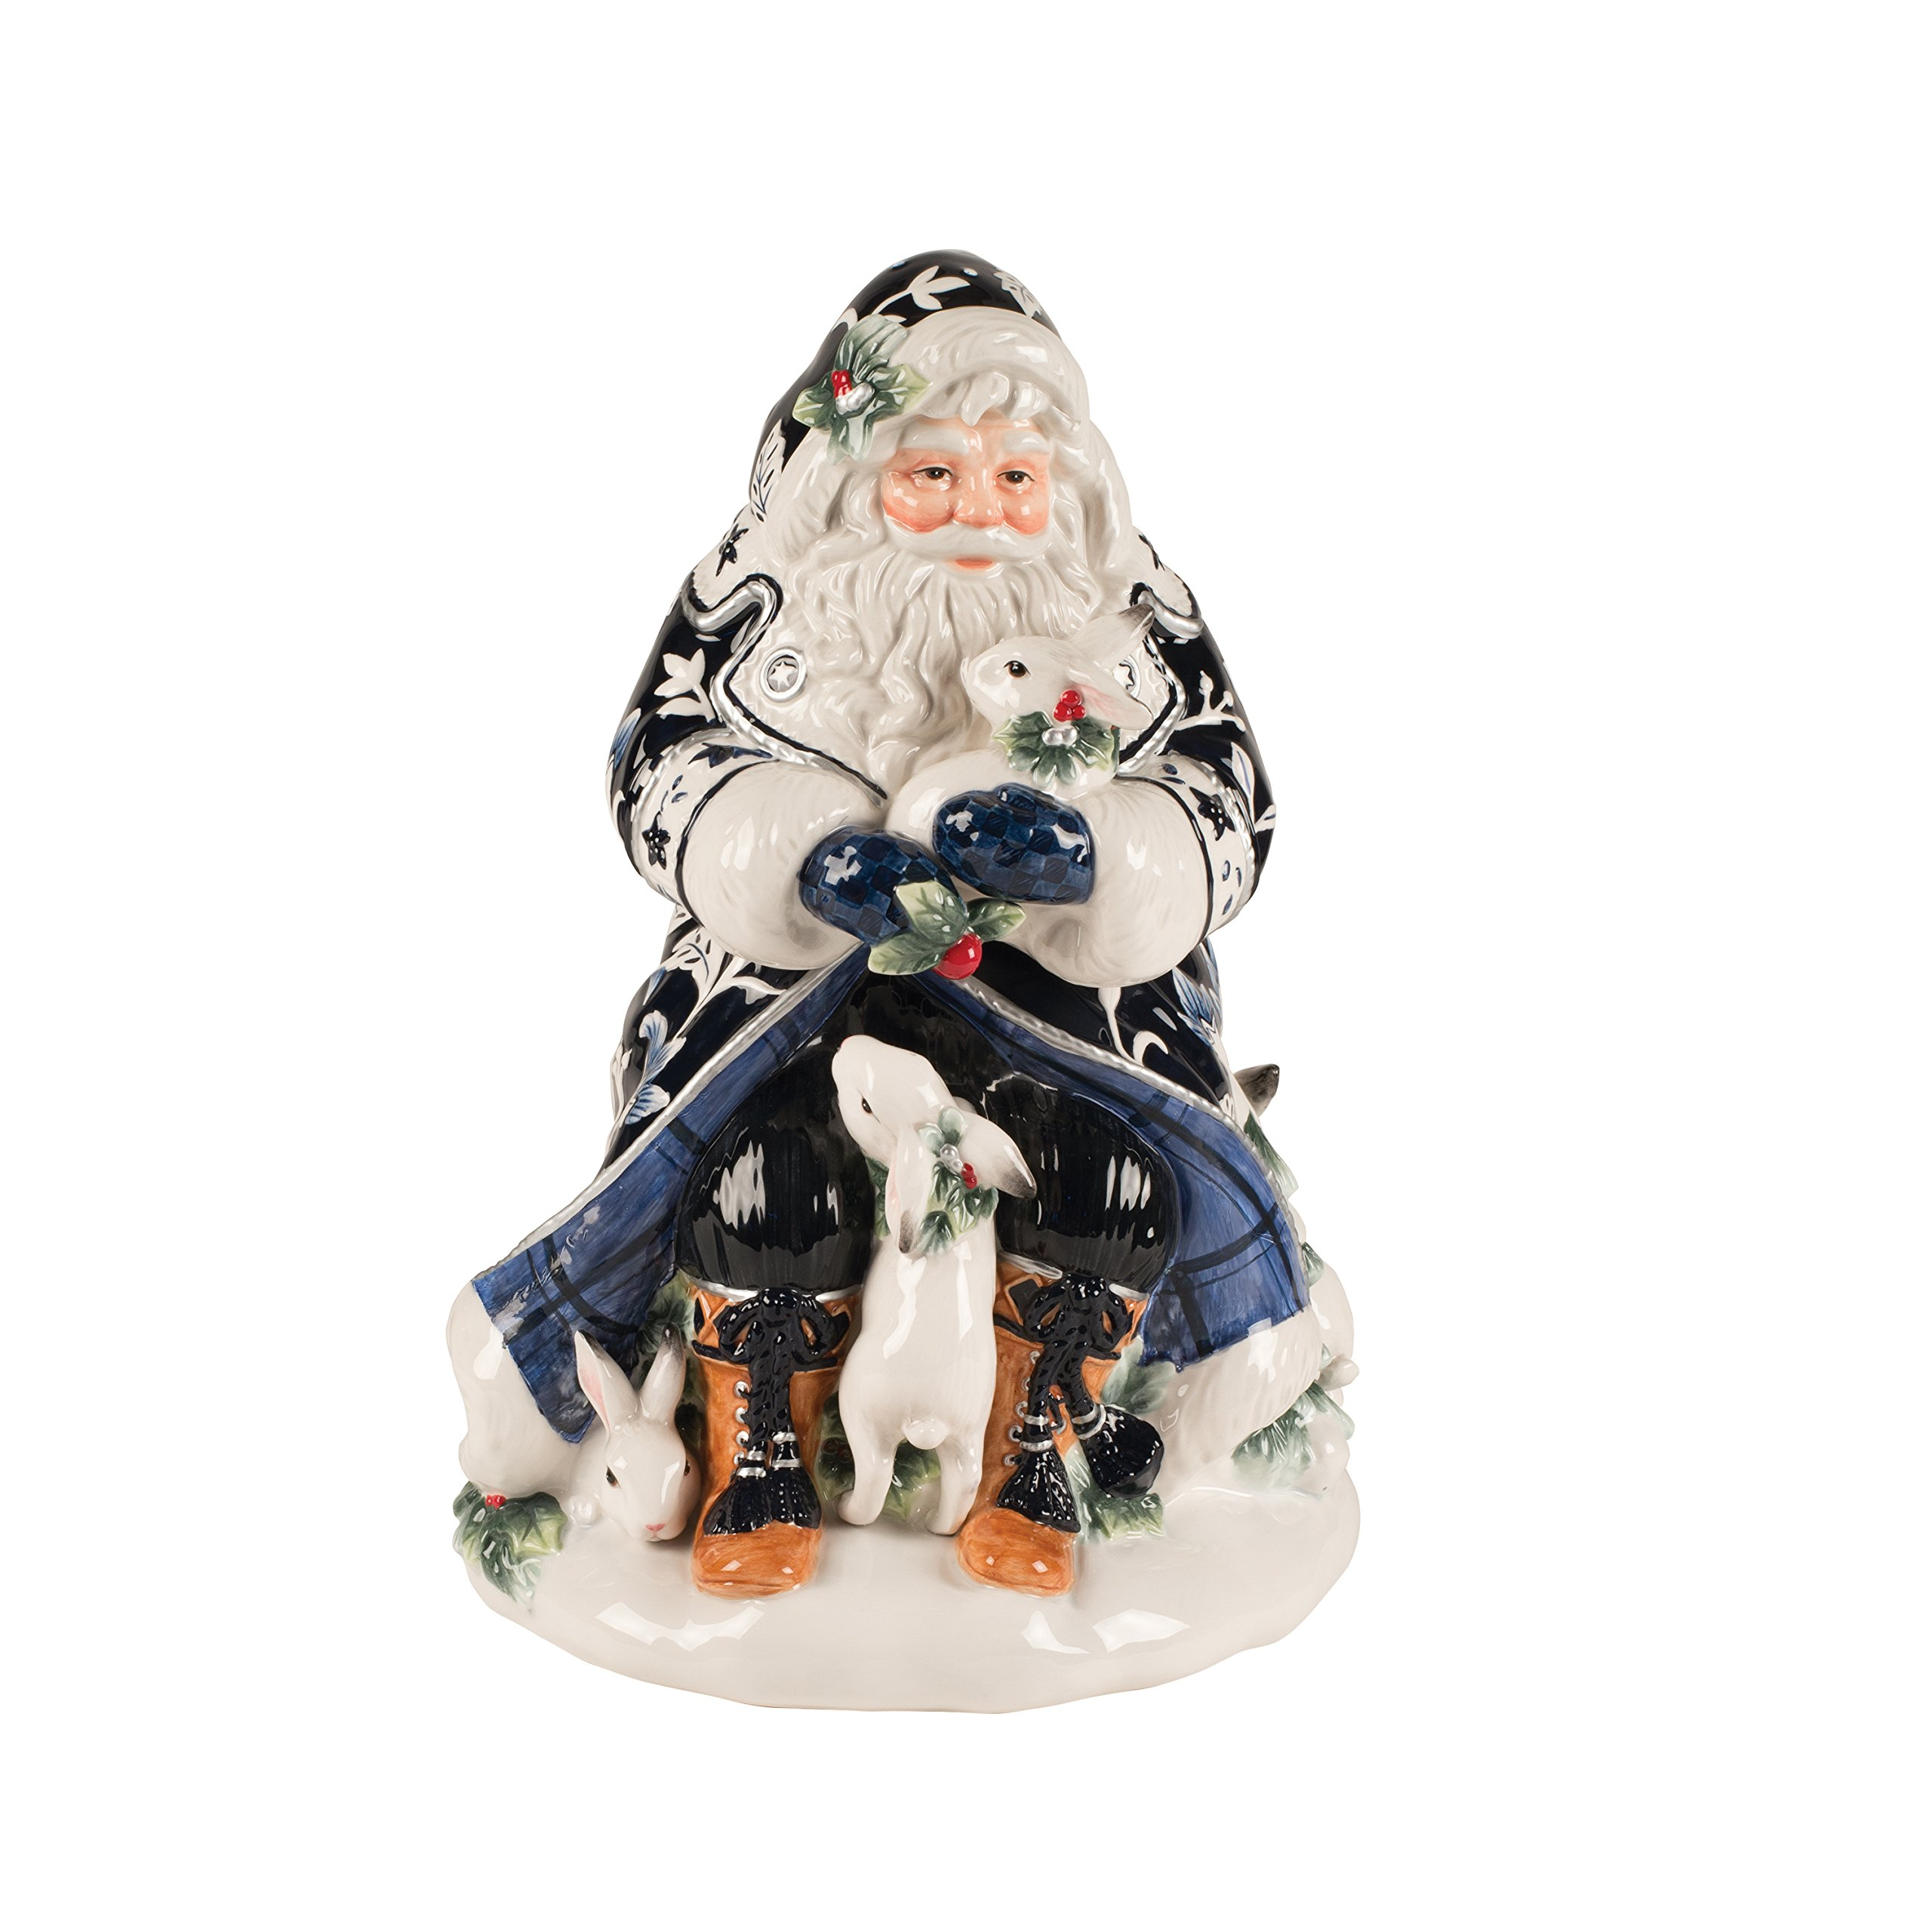 Fitz and Floyd Bristol Holiday Santa Cookie Jar, Blue/White by Fitz and Floyd